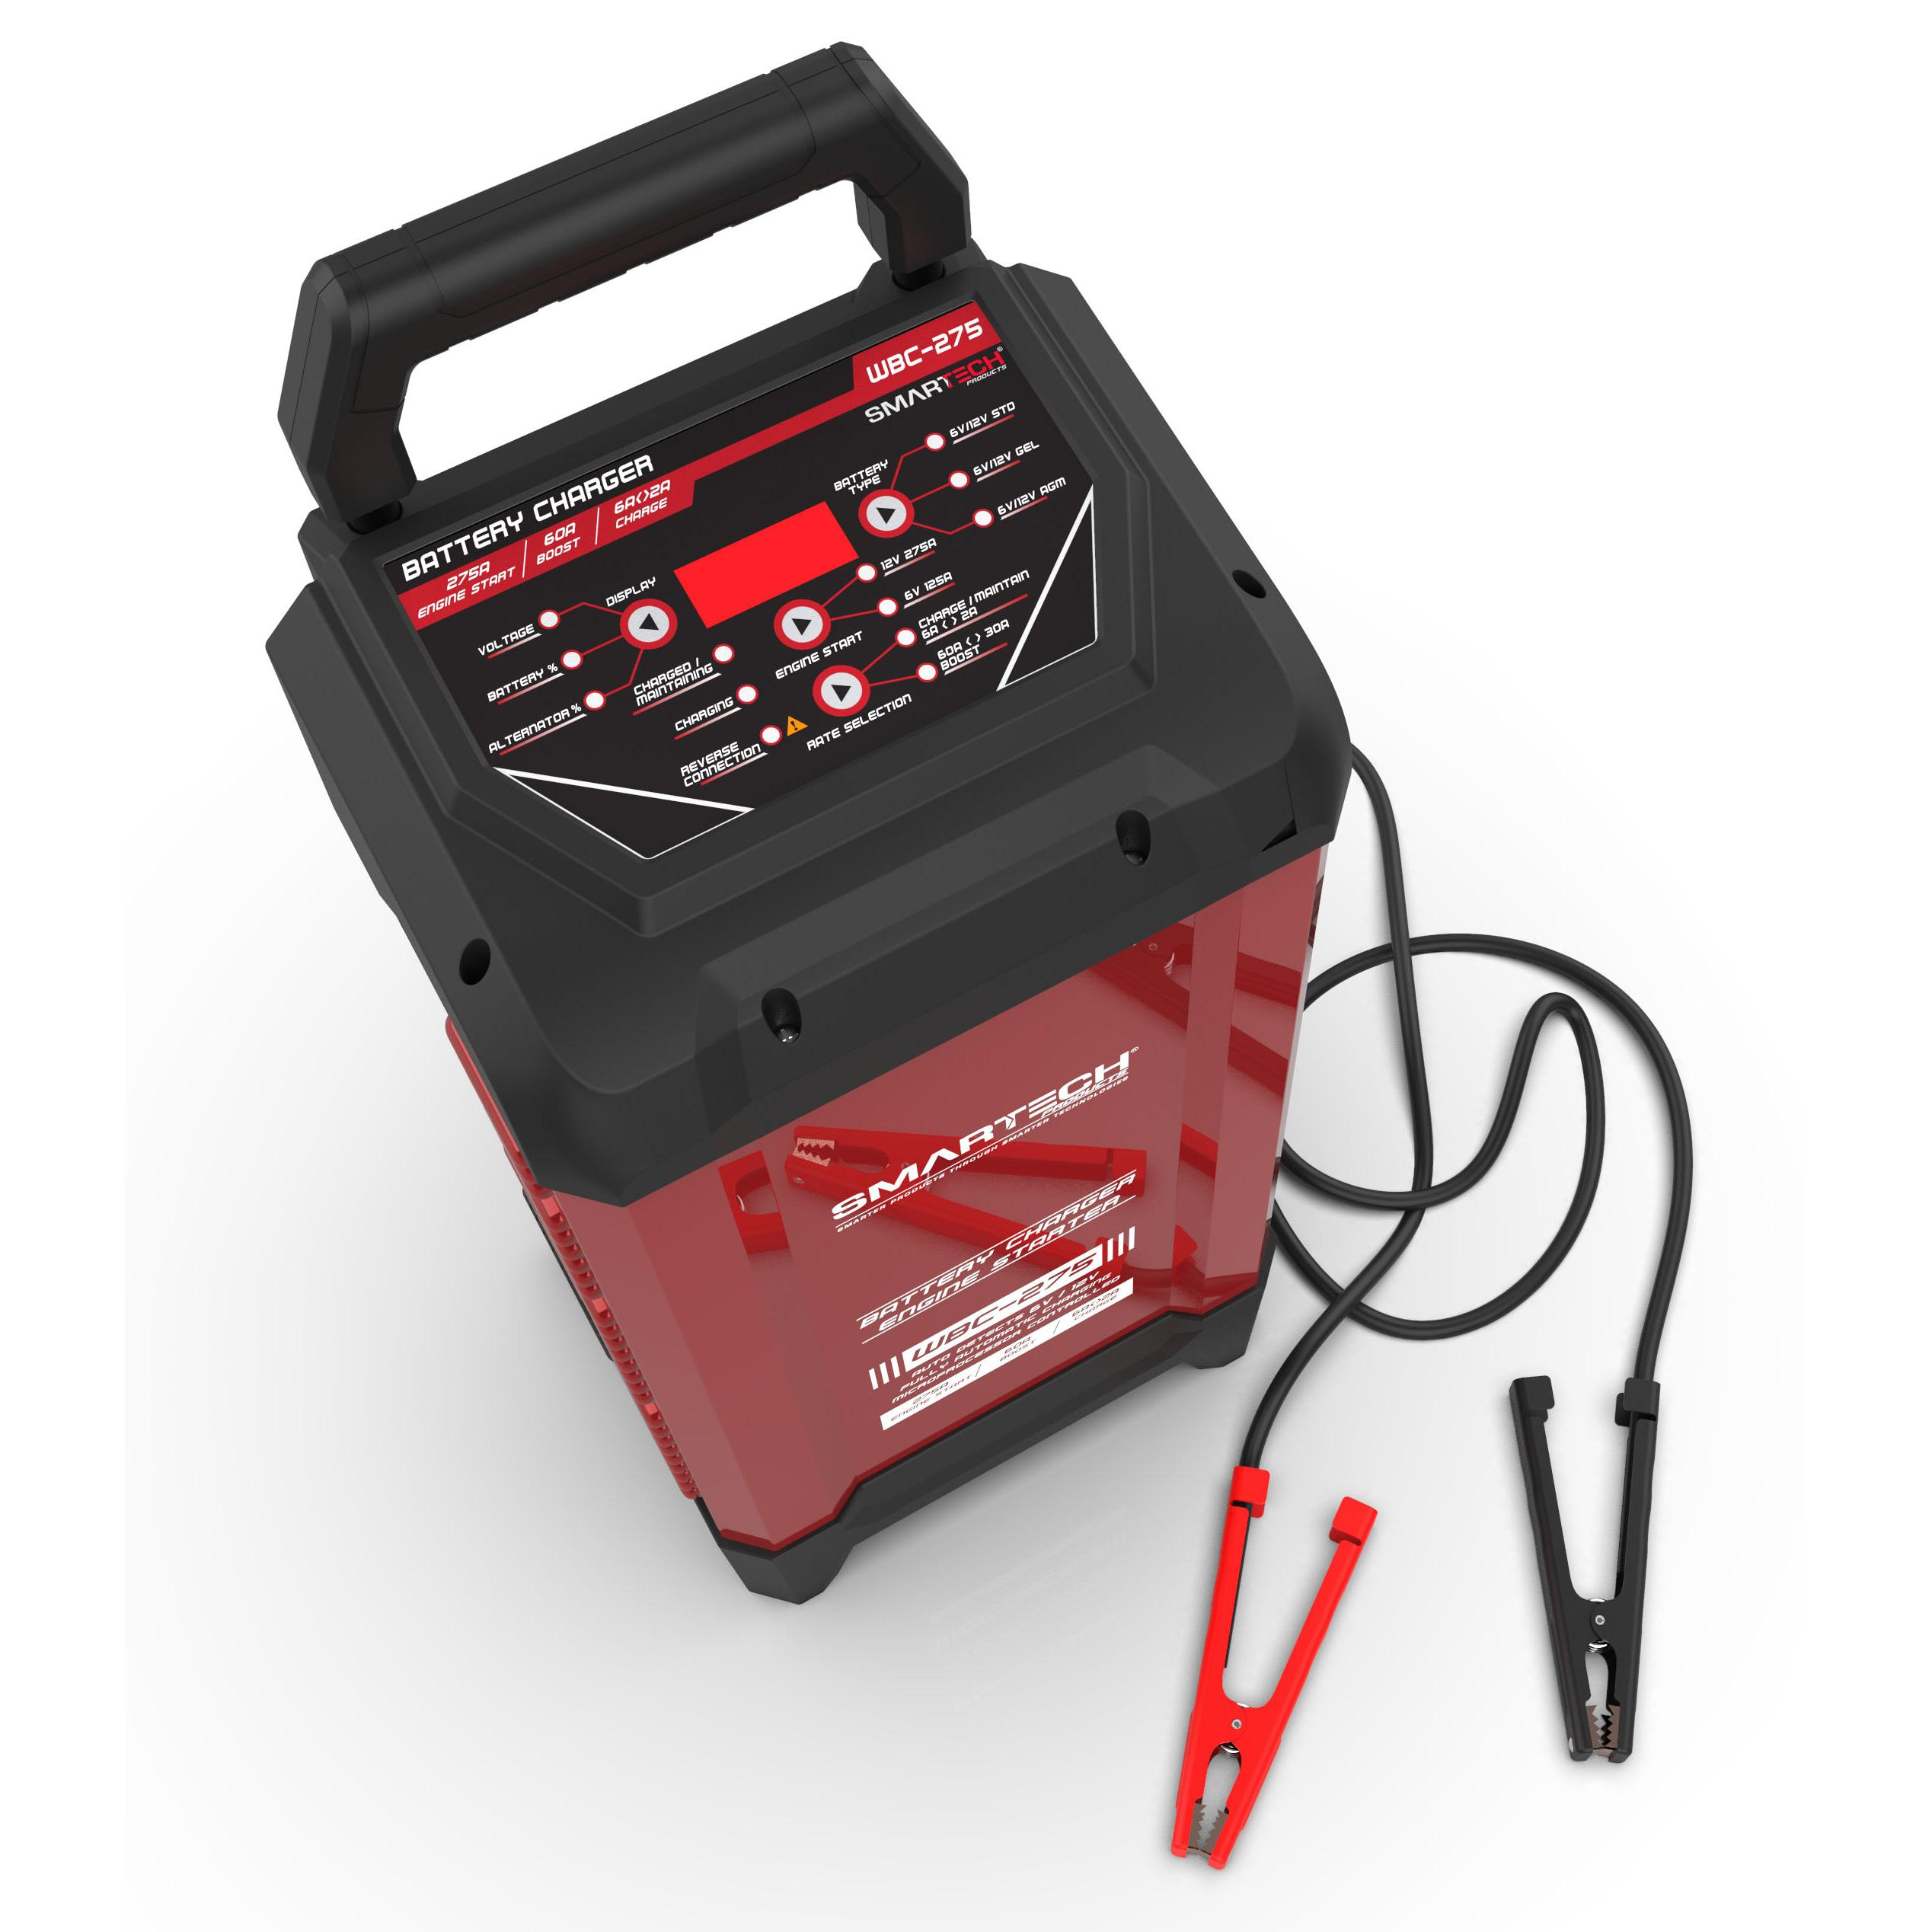 Smartech WBC-275 6V/12V Wheel Automotive Battery Charger, Maintainer